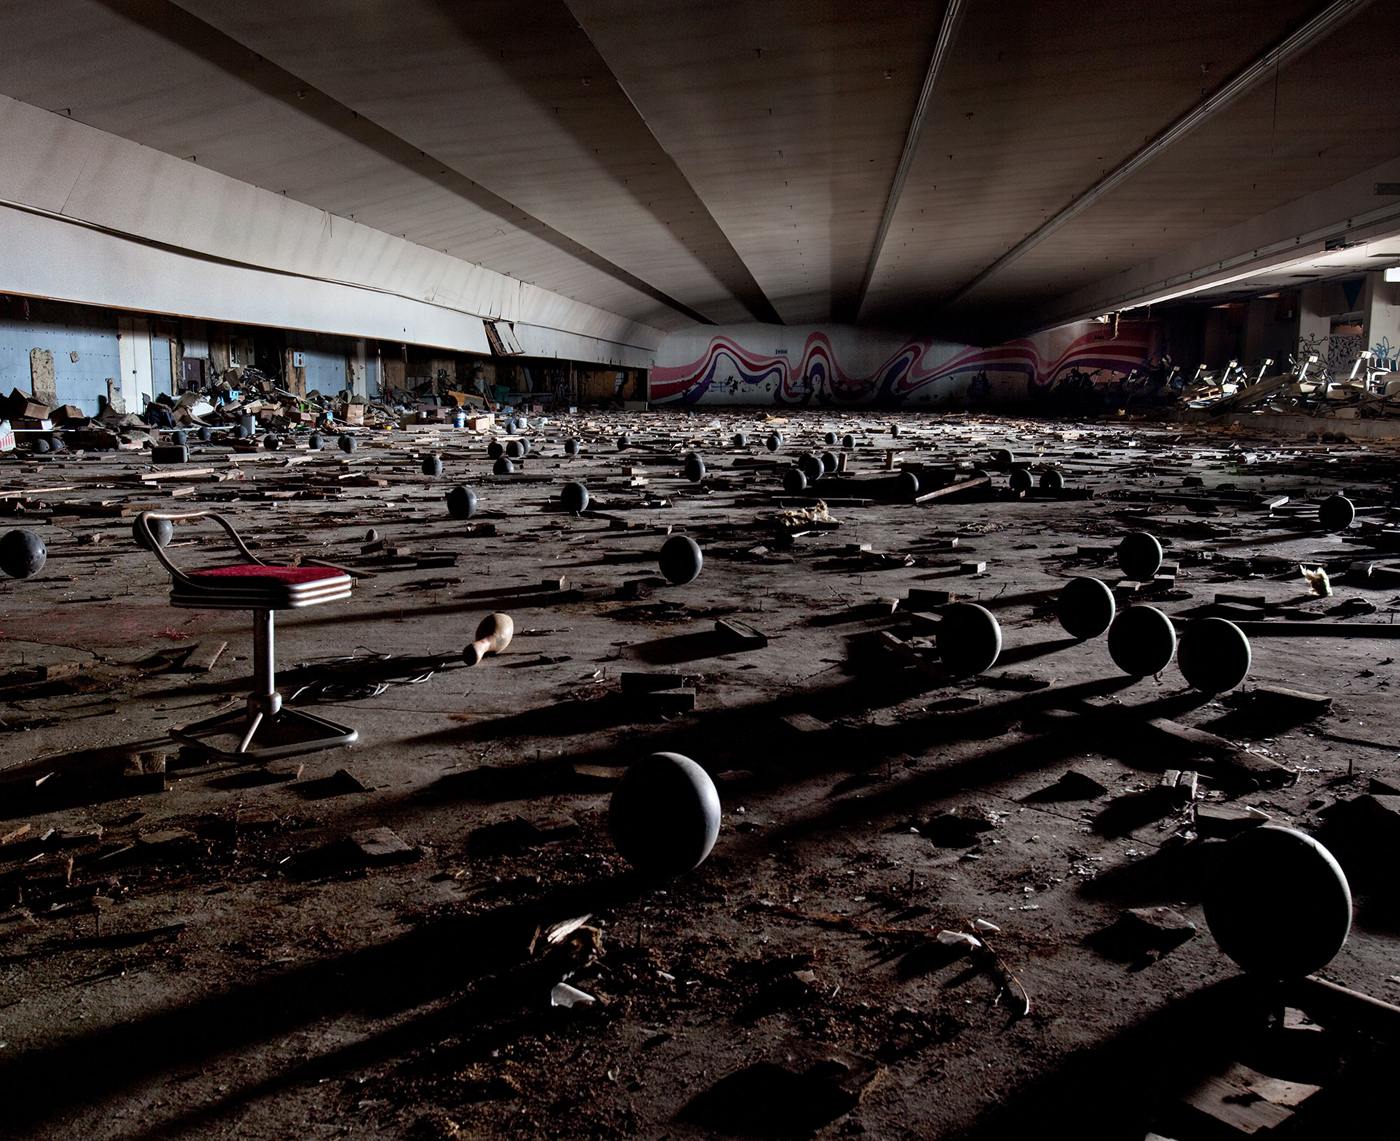 The abandoned Kanagawa Toyo bowling alley in Yokohama, Japan. Opened in 1987 with 108 lanes, the alley fell on hard times in the early 1990s. Photograph by Thomas Jorion, 2009.